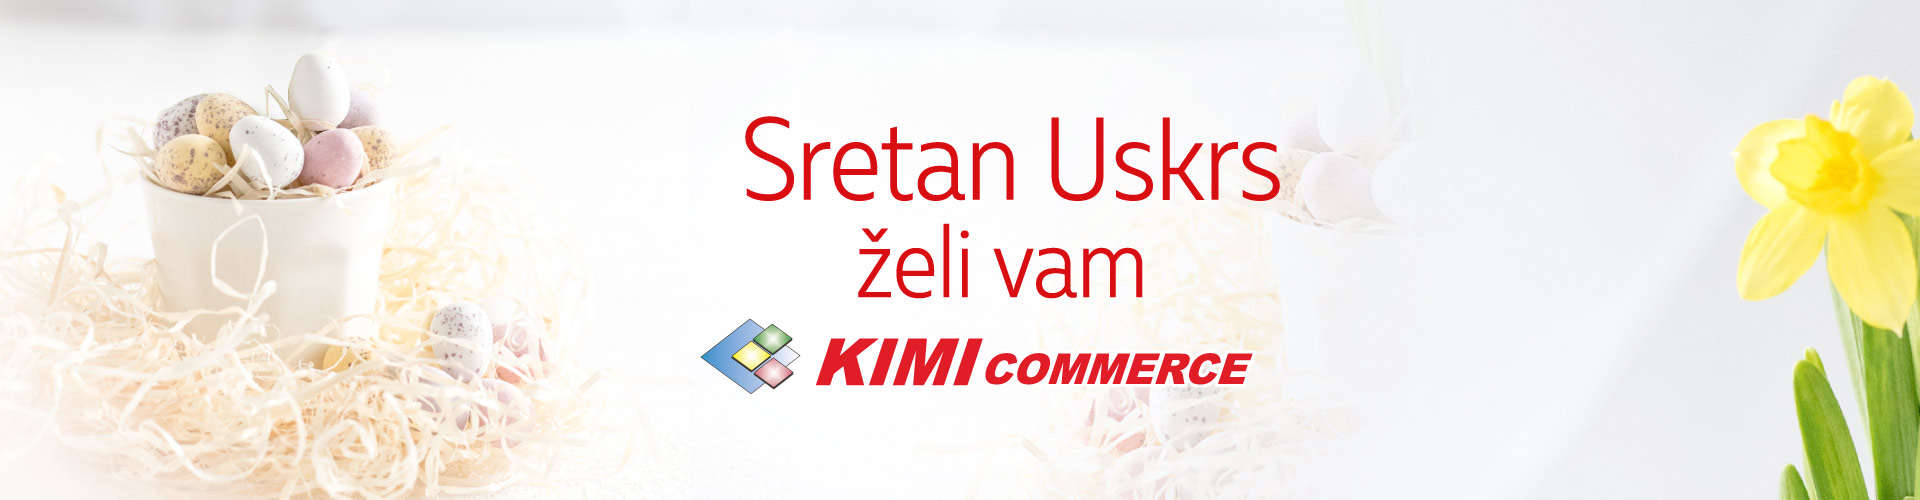 https://www.kimicommerce.hr/Repository/Banners/sretan-uskrs-042019.jpg